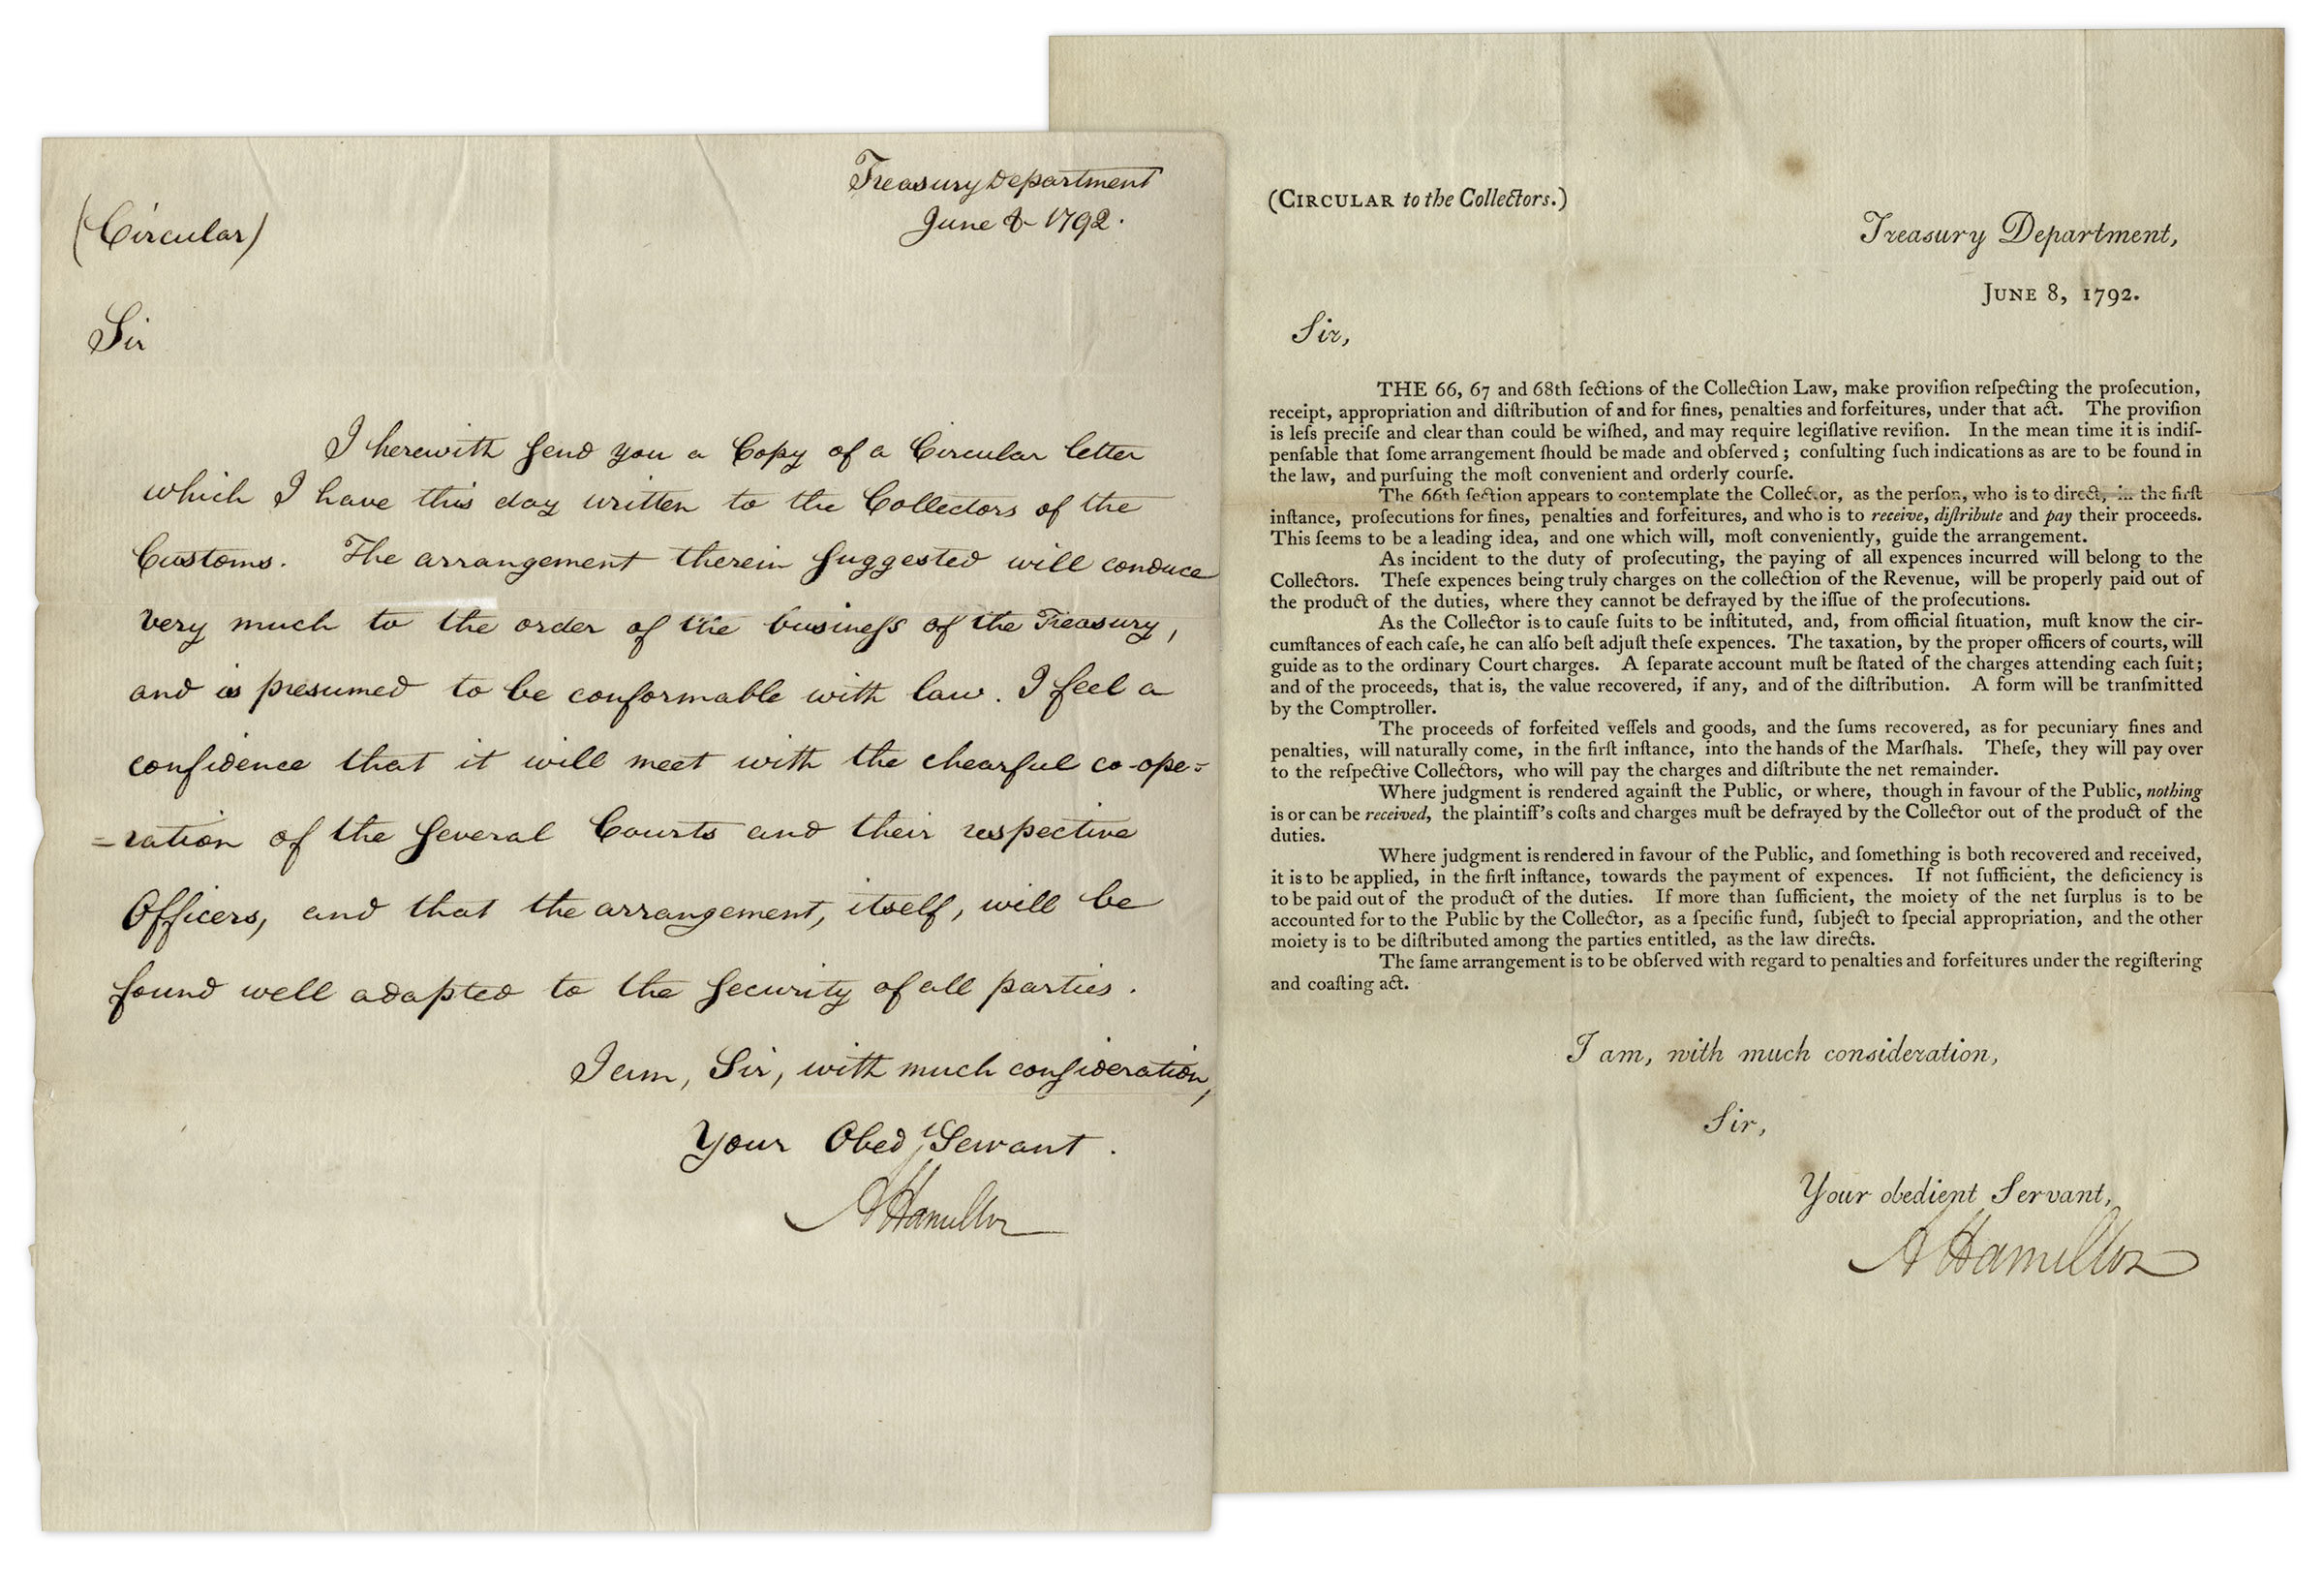 Alexander Hamilton autograph Alexander Hamilton Letters Signed Discussing Collection Law -- ''...I feel a confidence that it will meet with the chearful co-operation of the several courts...''